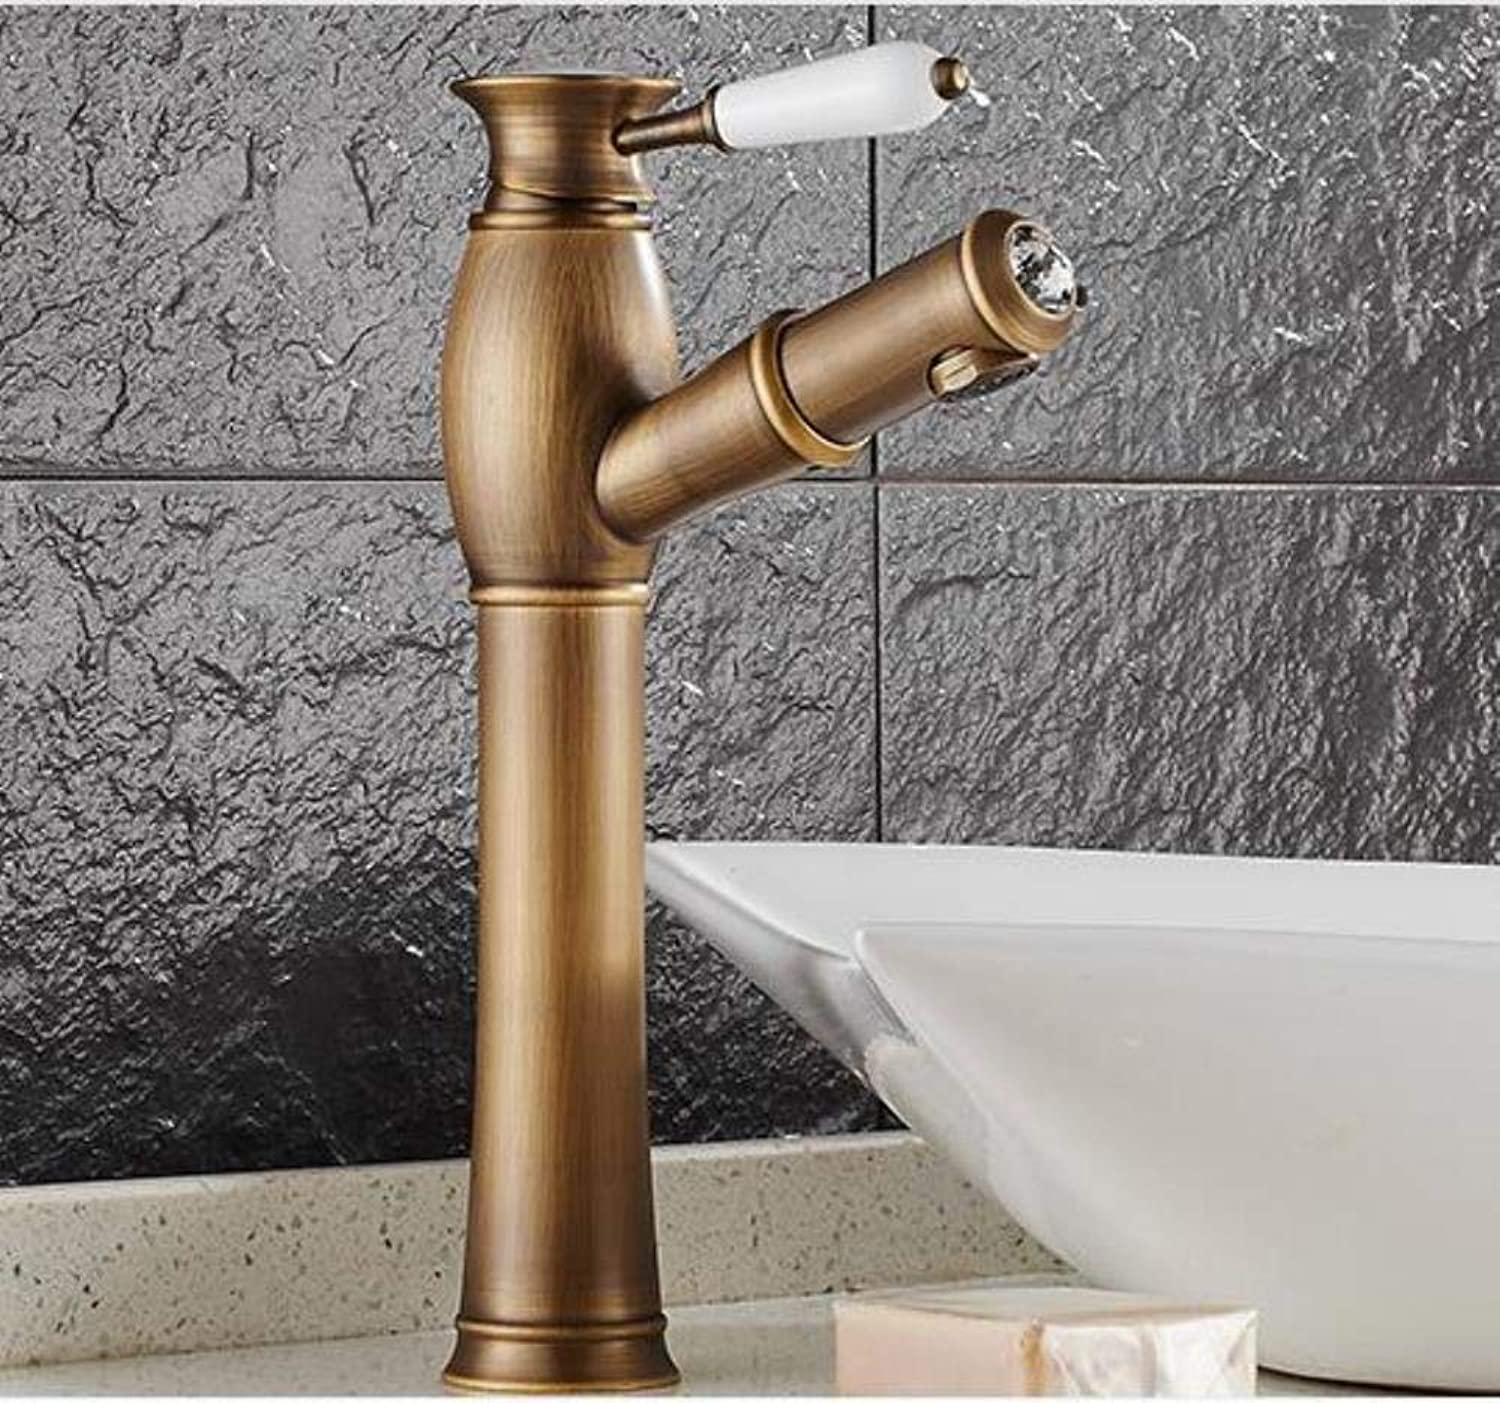 Kai&Guo brass hot and cold antique bronze finish bathroom pull out basin faucet bathroom faucet sink tap with pull out shower head style,tall